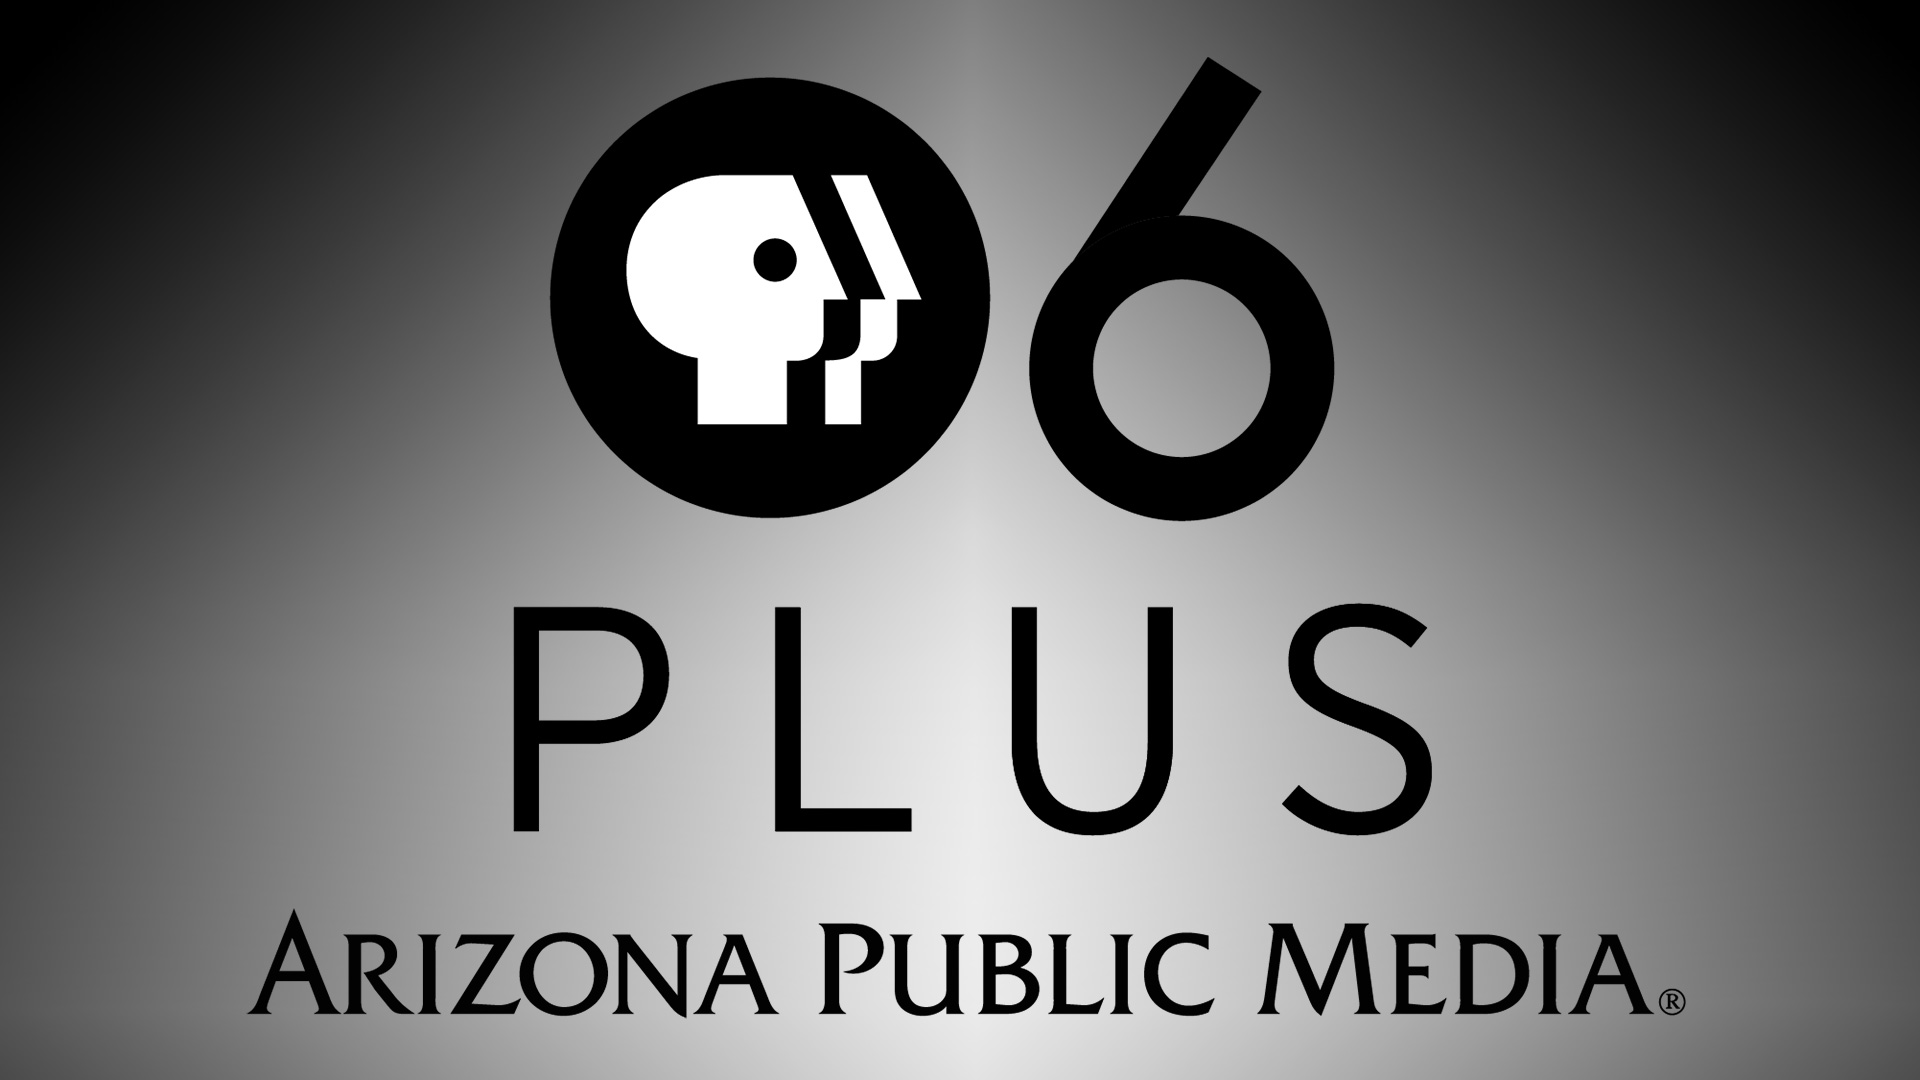 PBS 6 PLUS, AZPM's new lifestyle channel, debuts on July 1.